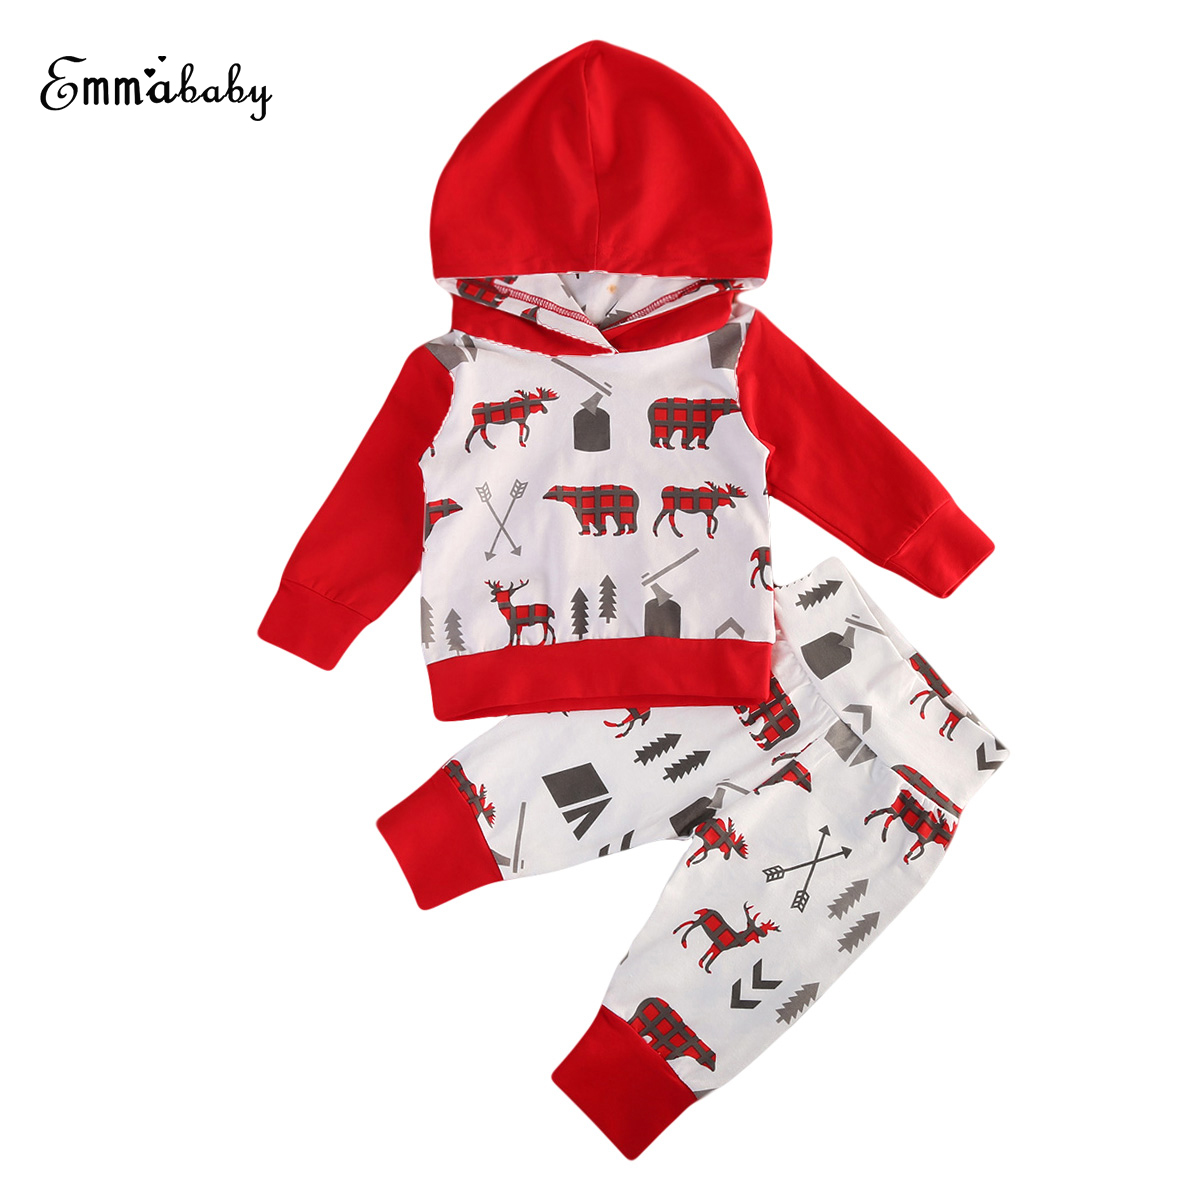 Emmababy 2PCS Toddler Baby Boys Long Sleeve Cotton Hooded Tops + Long Pants Home Outfits Set Clothes